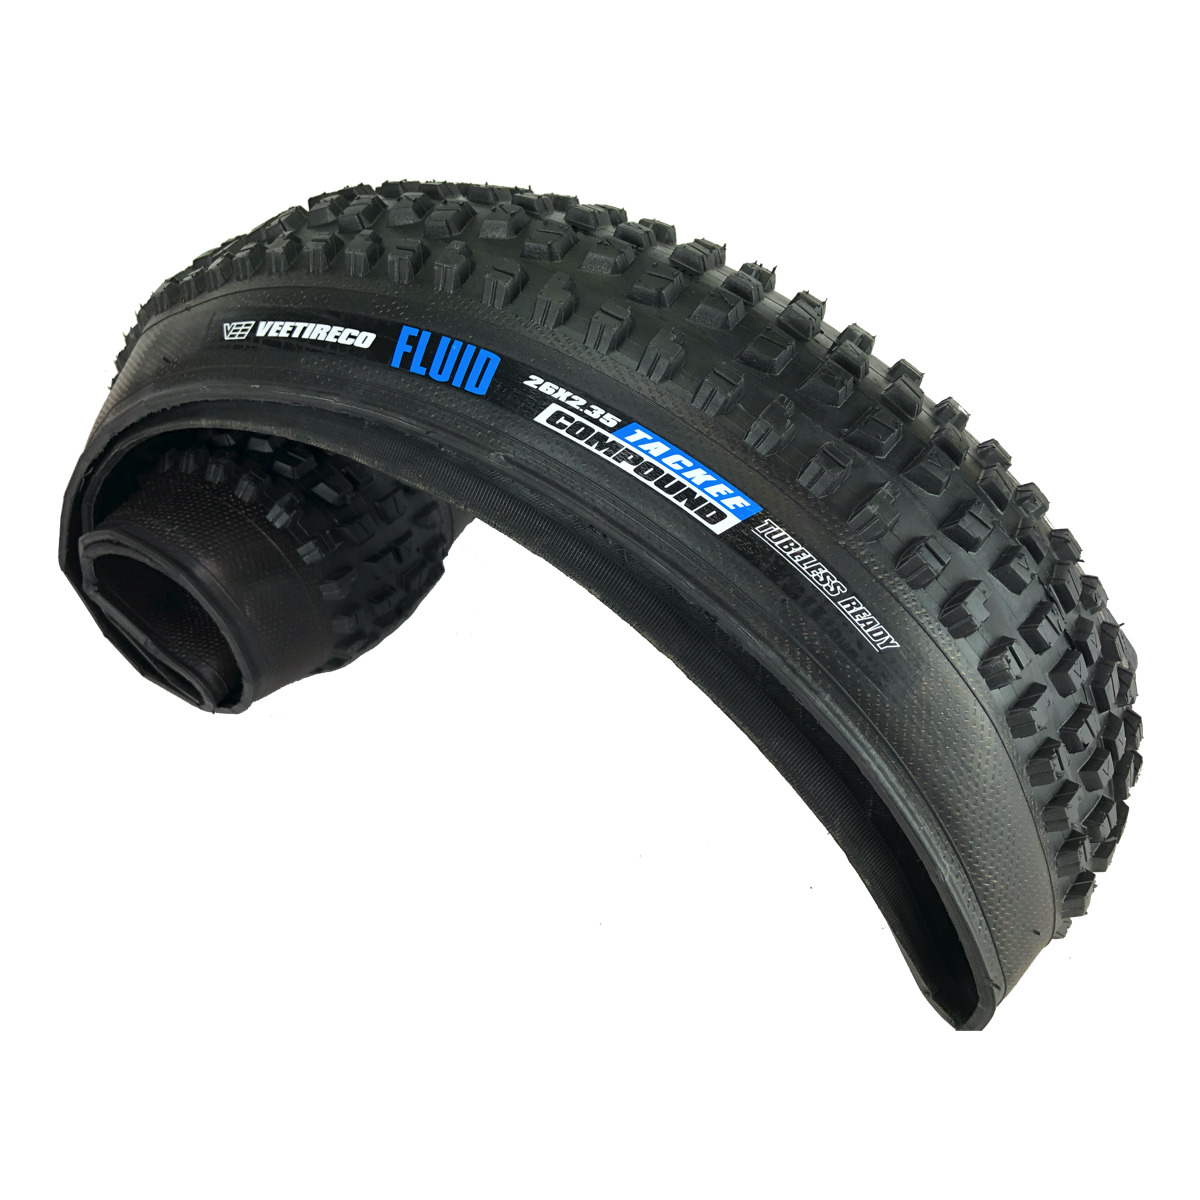 2 Rubber Fluid 26x2.50 Pair Of Bicycle Tires Folding Bead Tackee Compound Vee